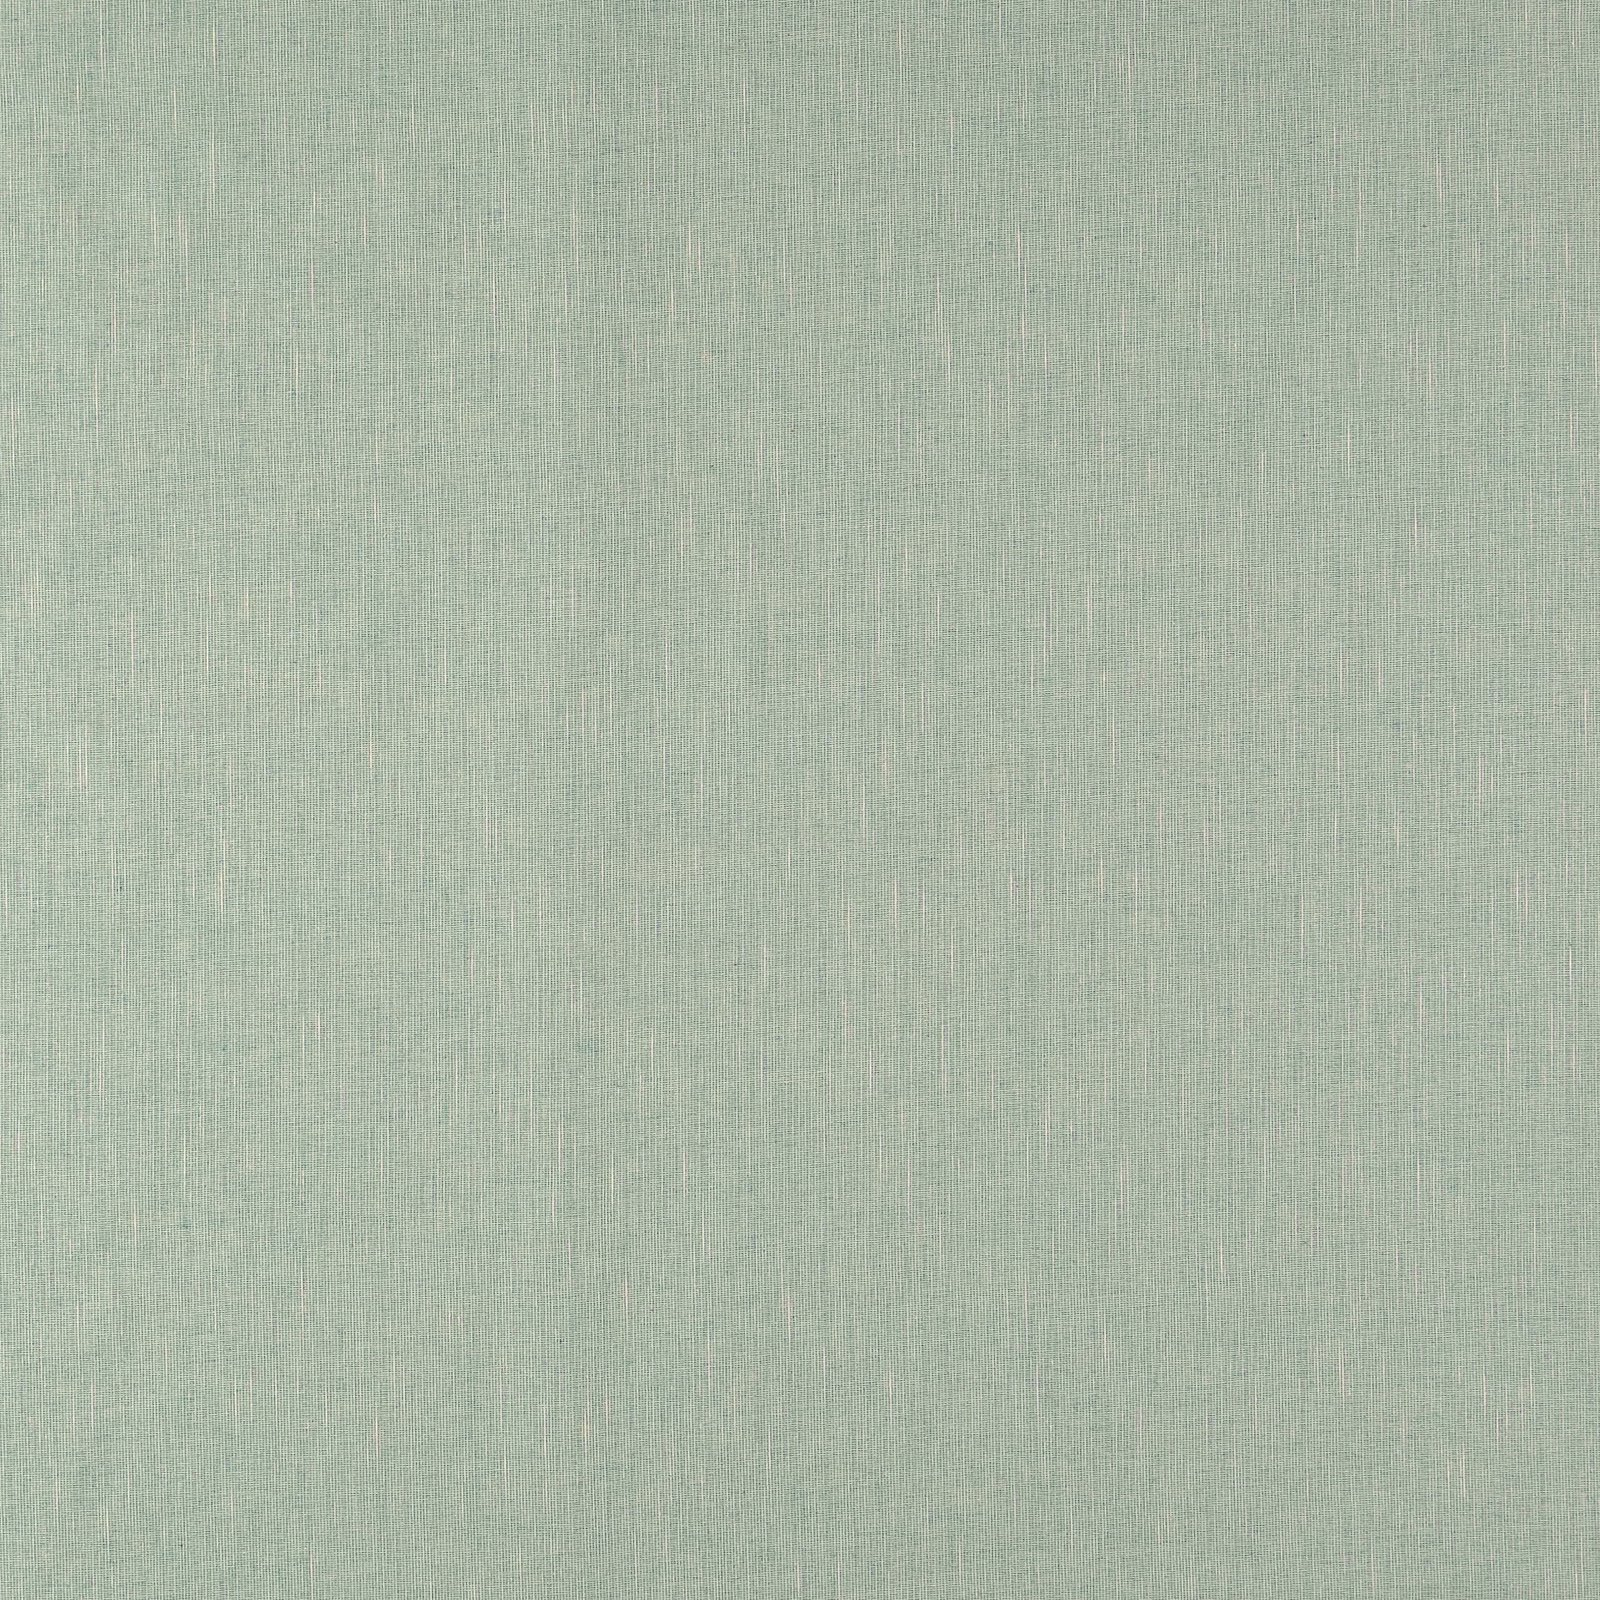 Voile dusty army melange w texture 816236_pack_sp